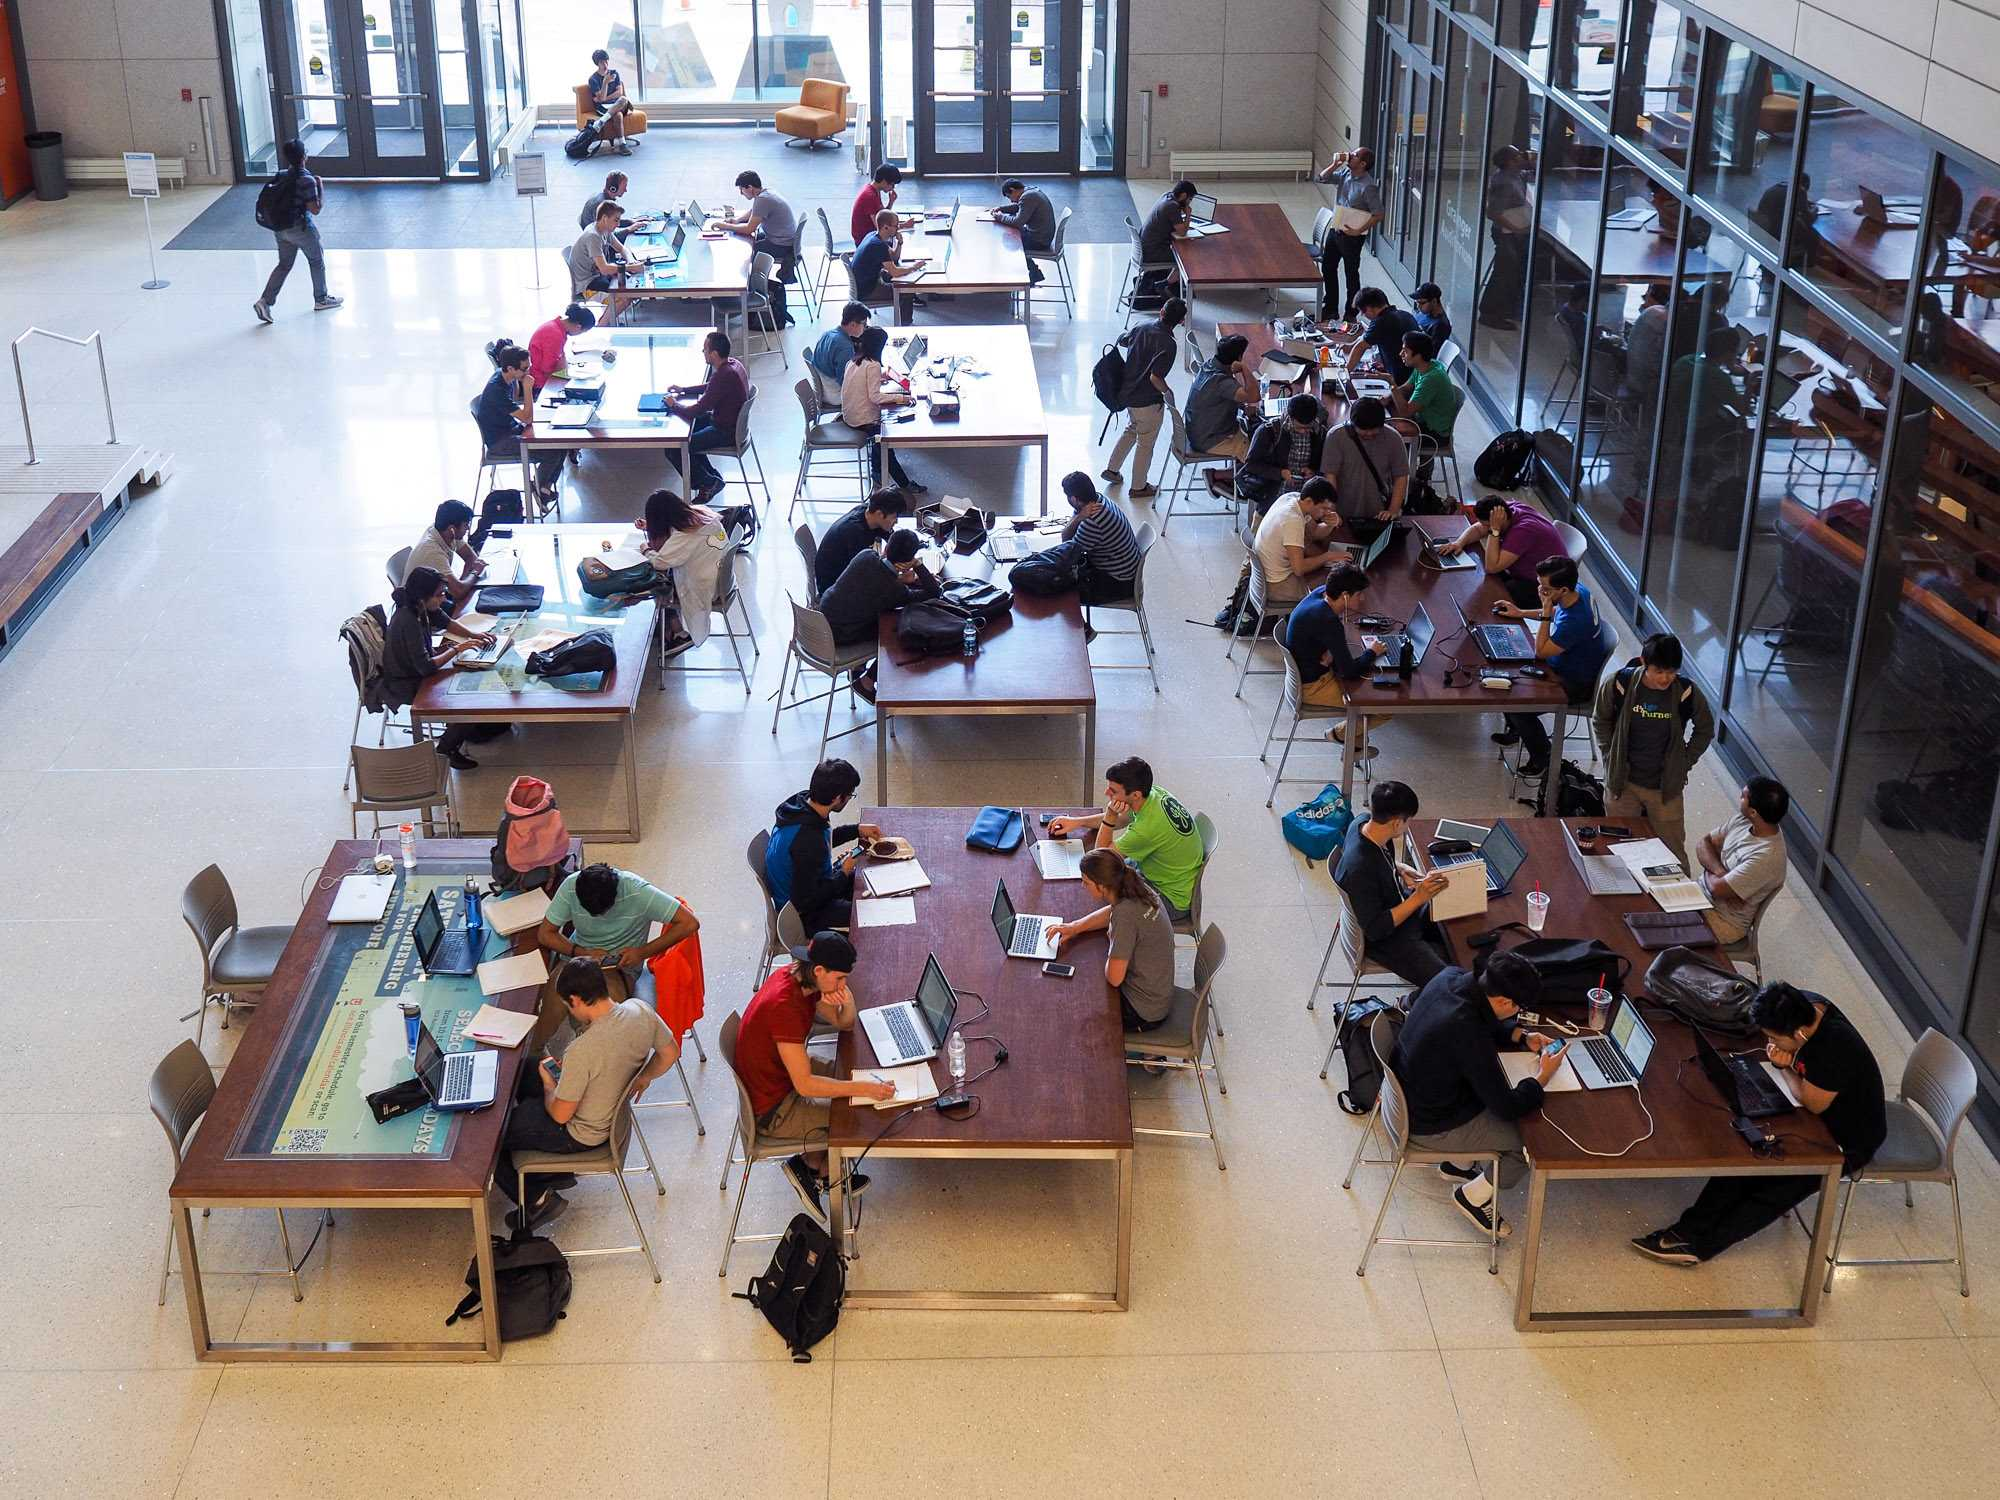 Students study in the Electrical and Computer Engineering Building in Champaign, IL. October 4, 2016.